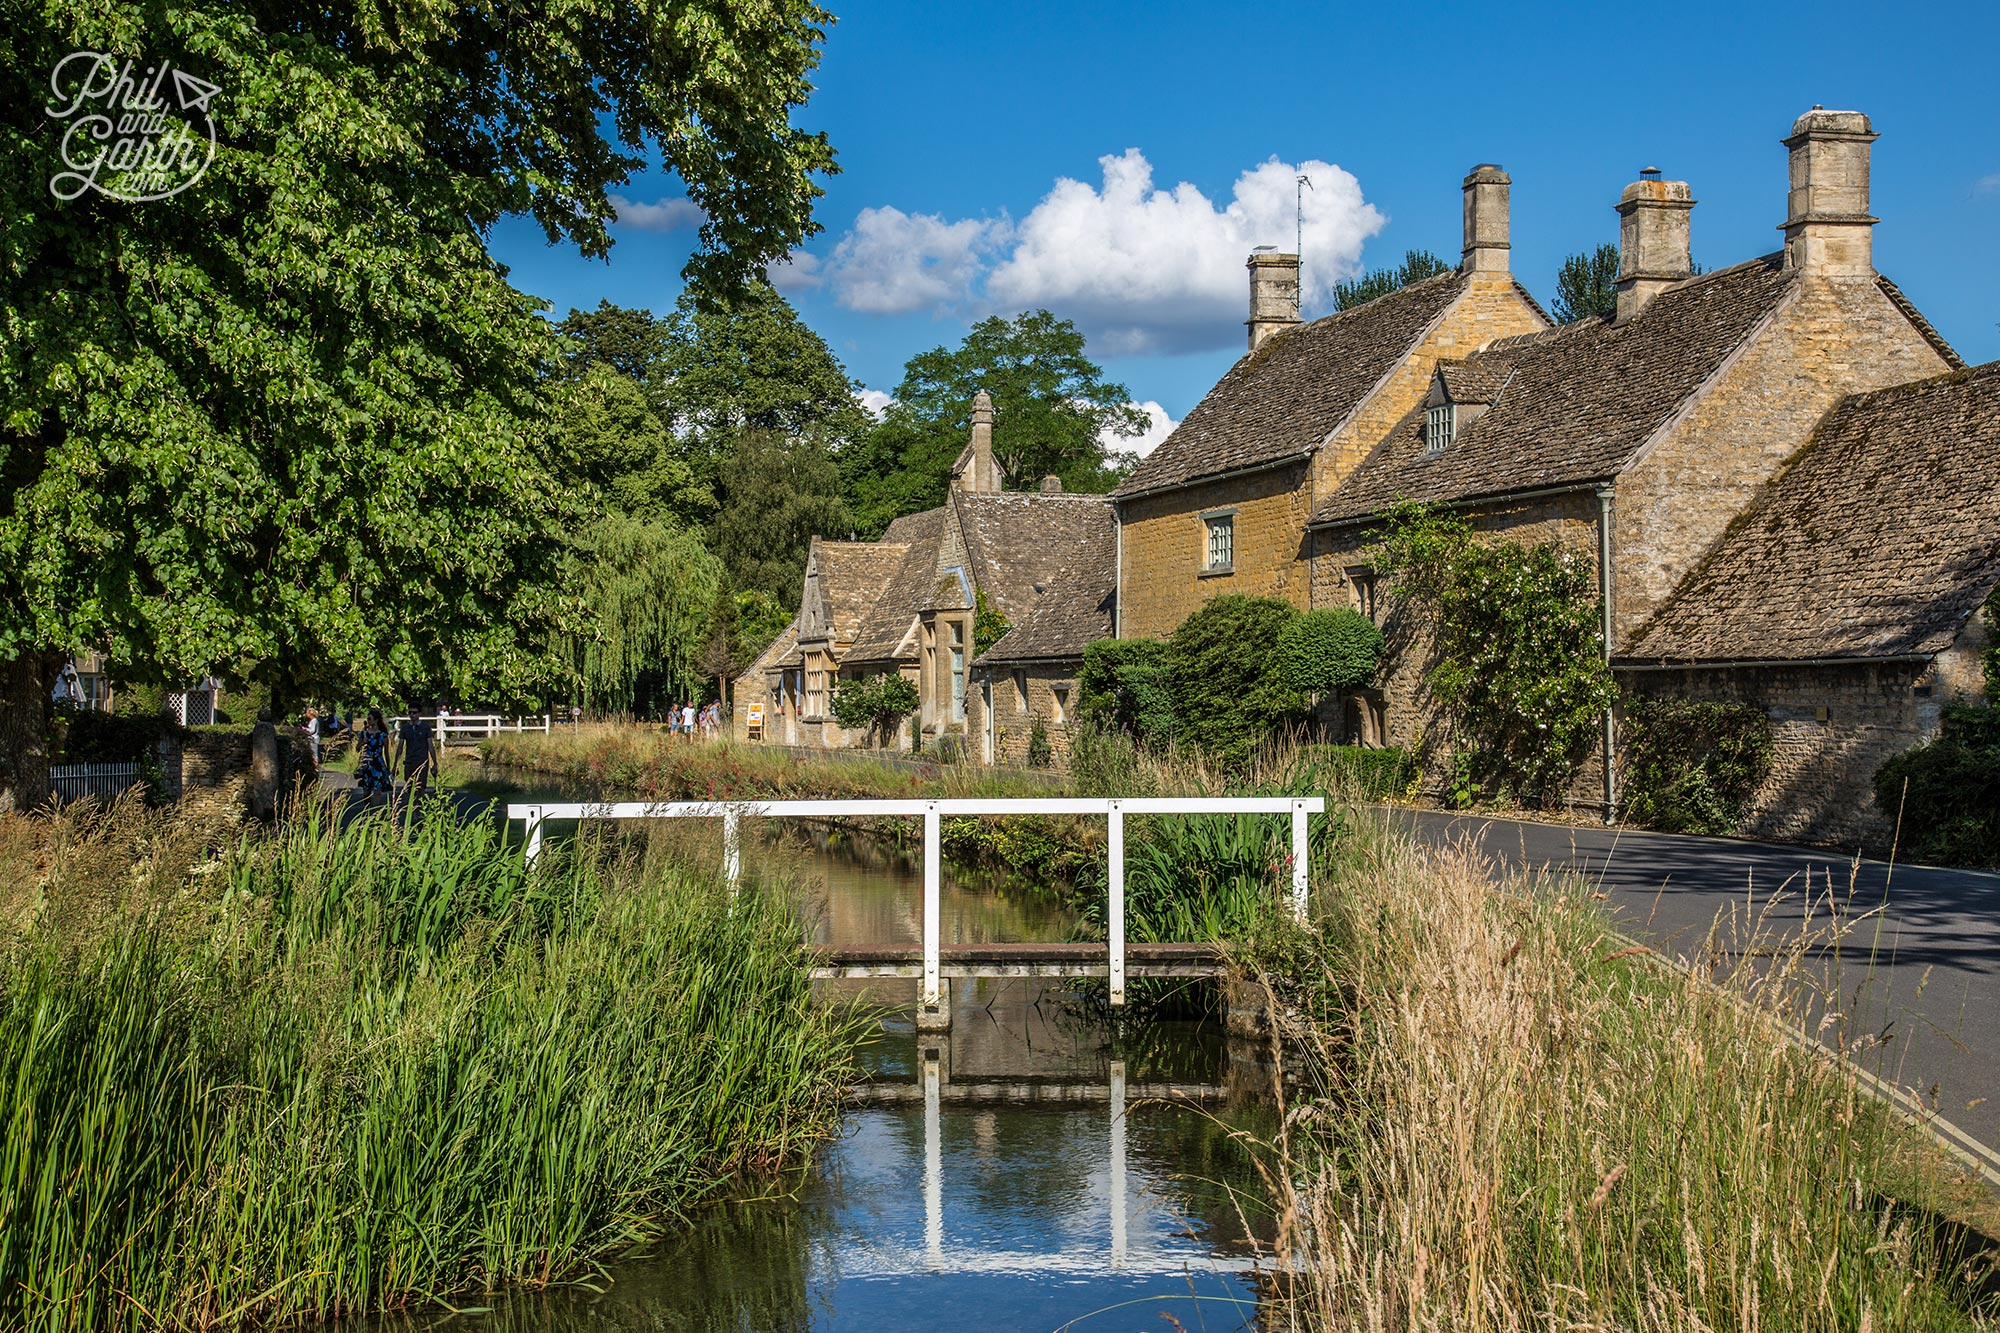 Picturesque Lower Slaughter